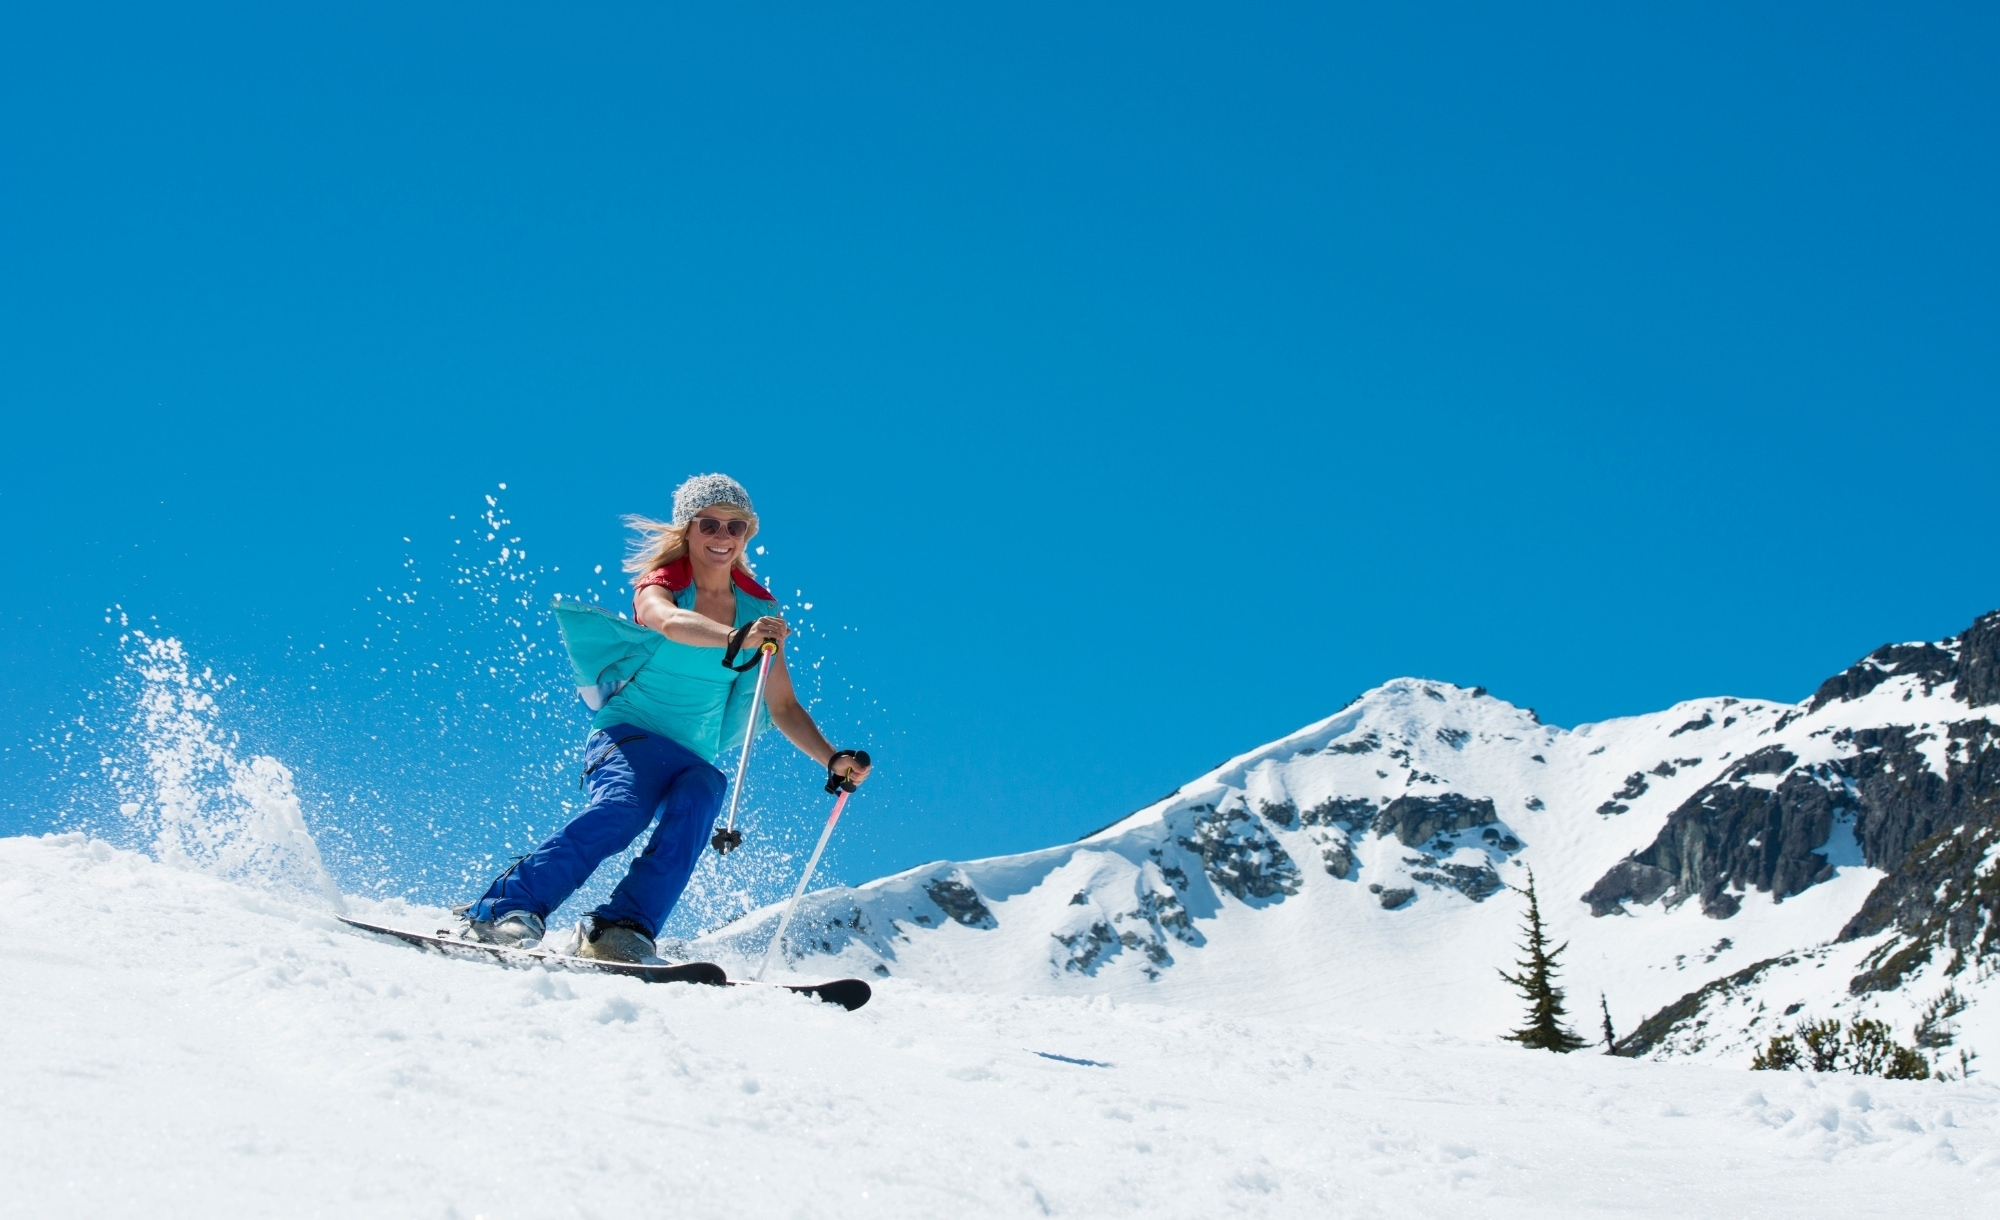 where can you ski in summer